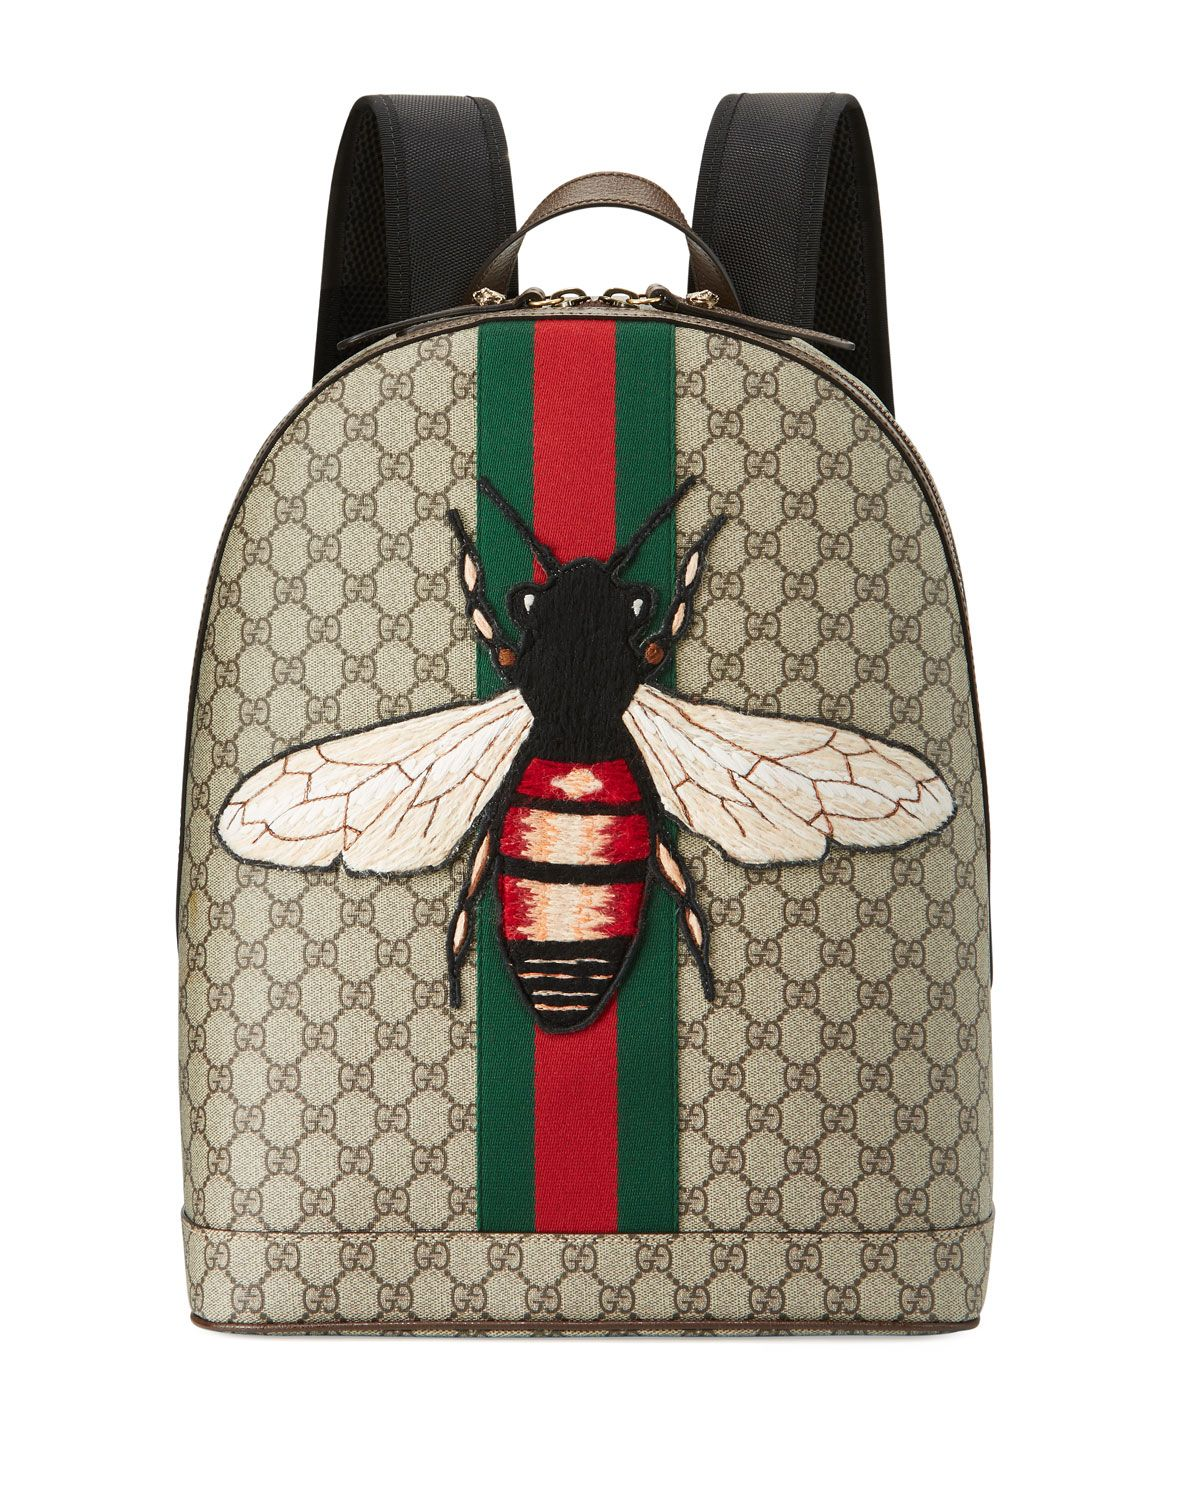 23f117e1e436 Gucci Animalier backpack in GG supreme canvas with hand-embroidered and  -applied bee appliqu. Signature green/red/green web stripe down center  front.